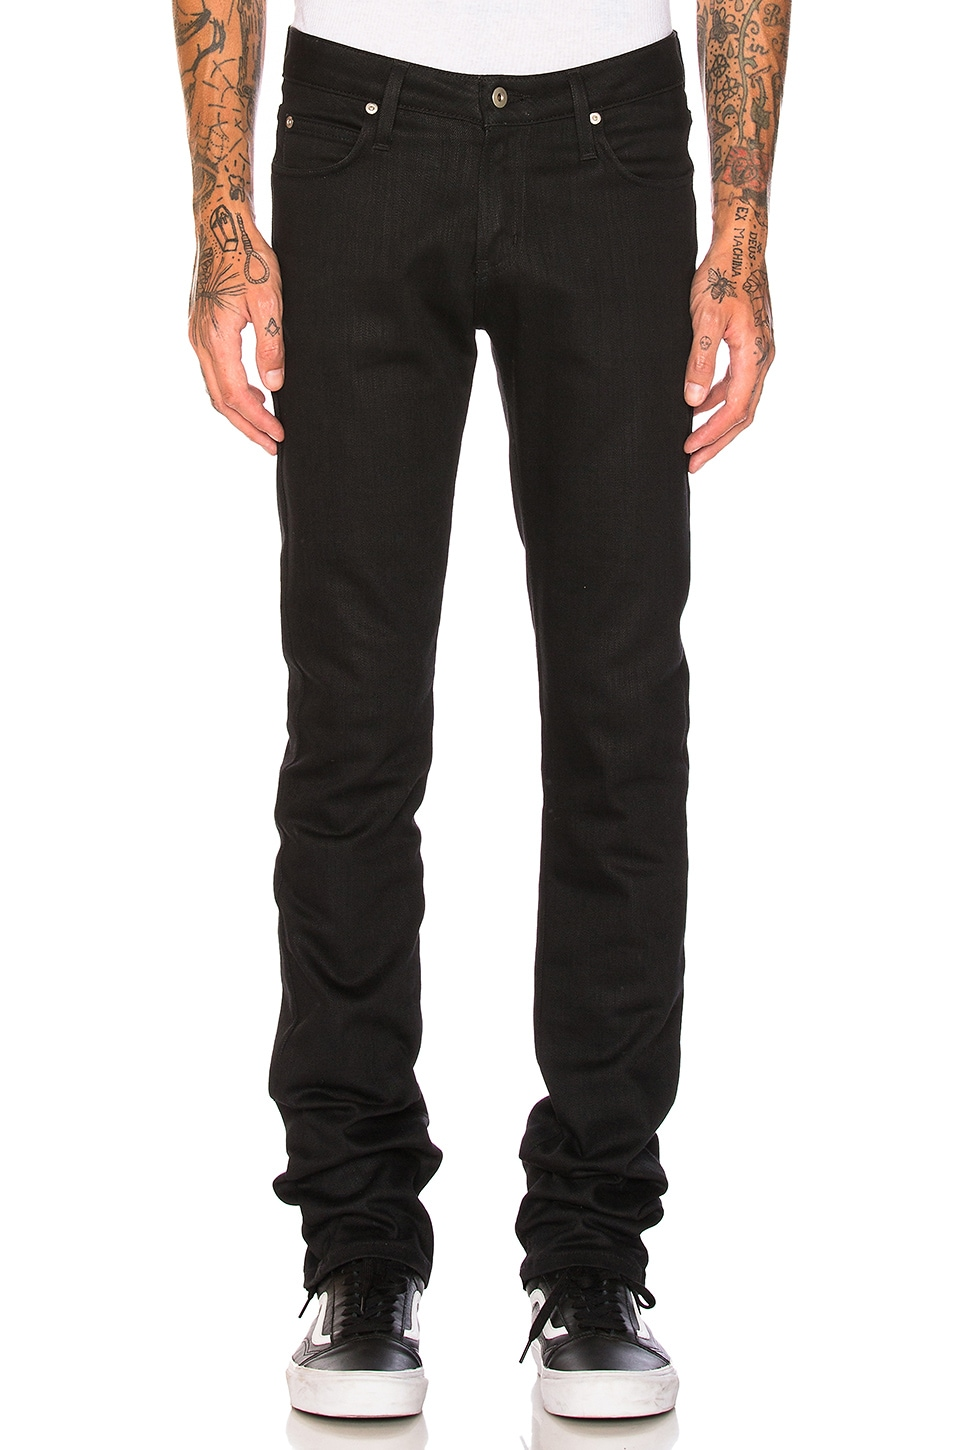 Naked & Famous Denim Skinny Guy Black Power Stretch in Black